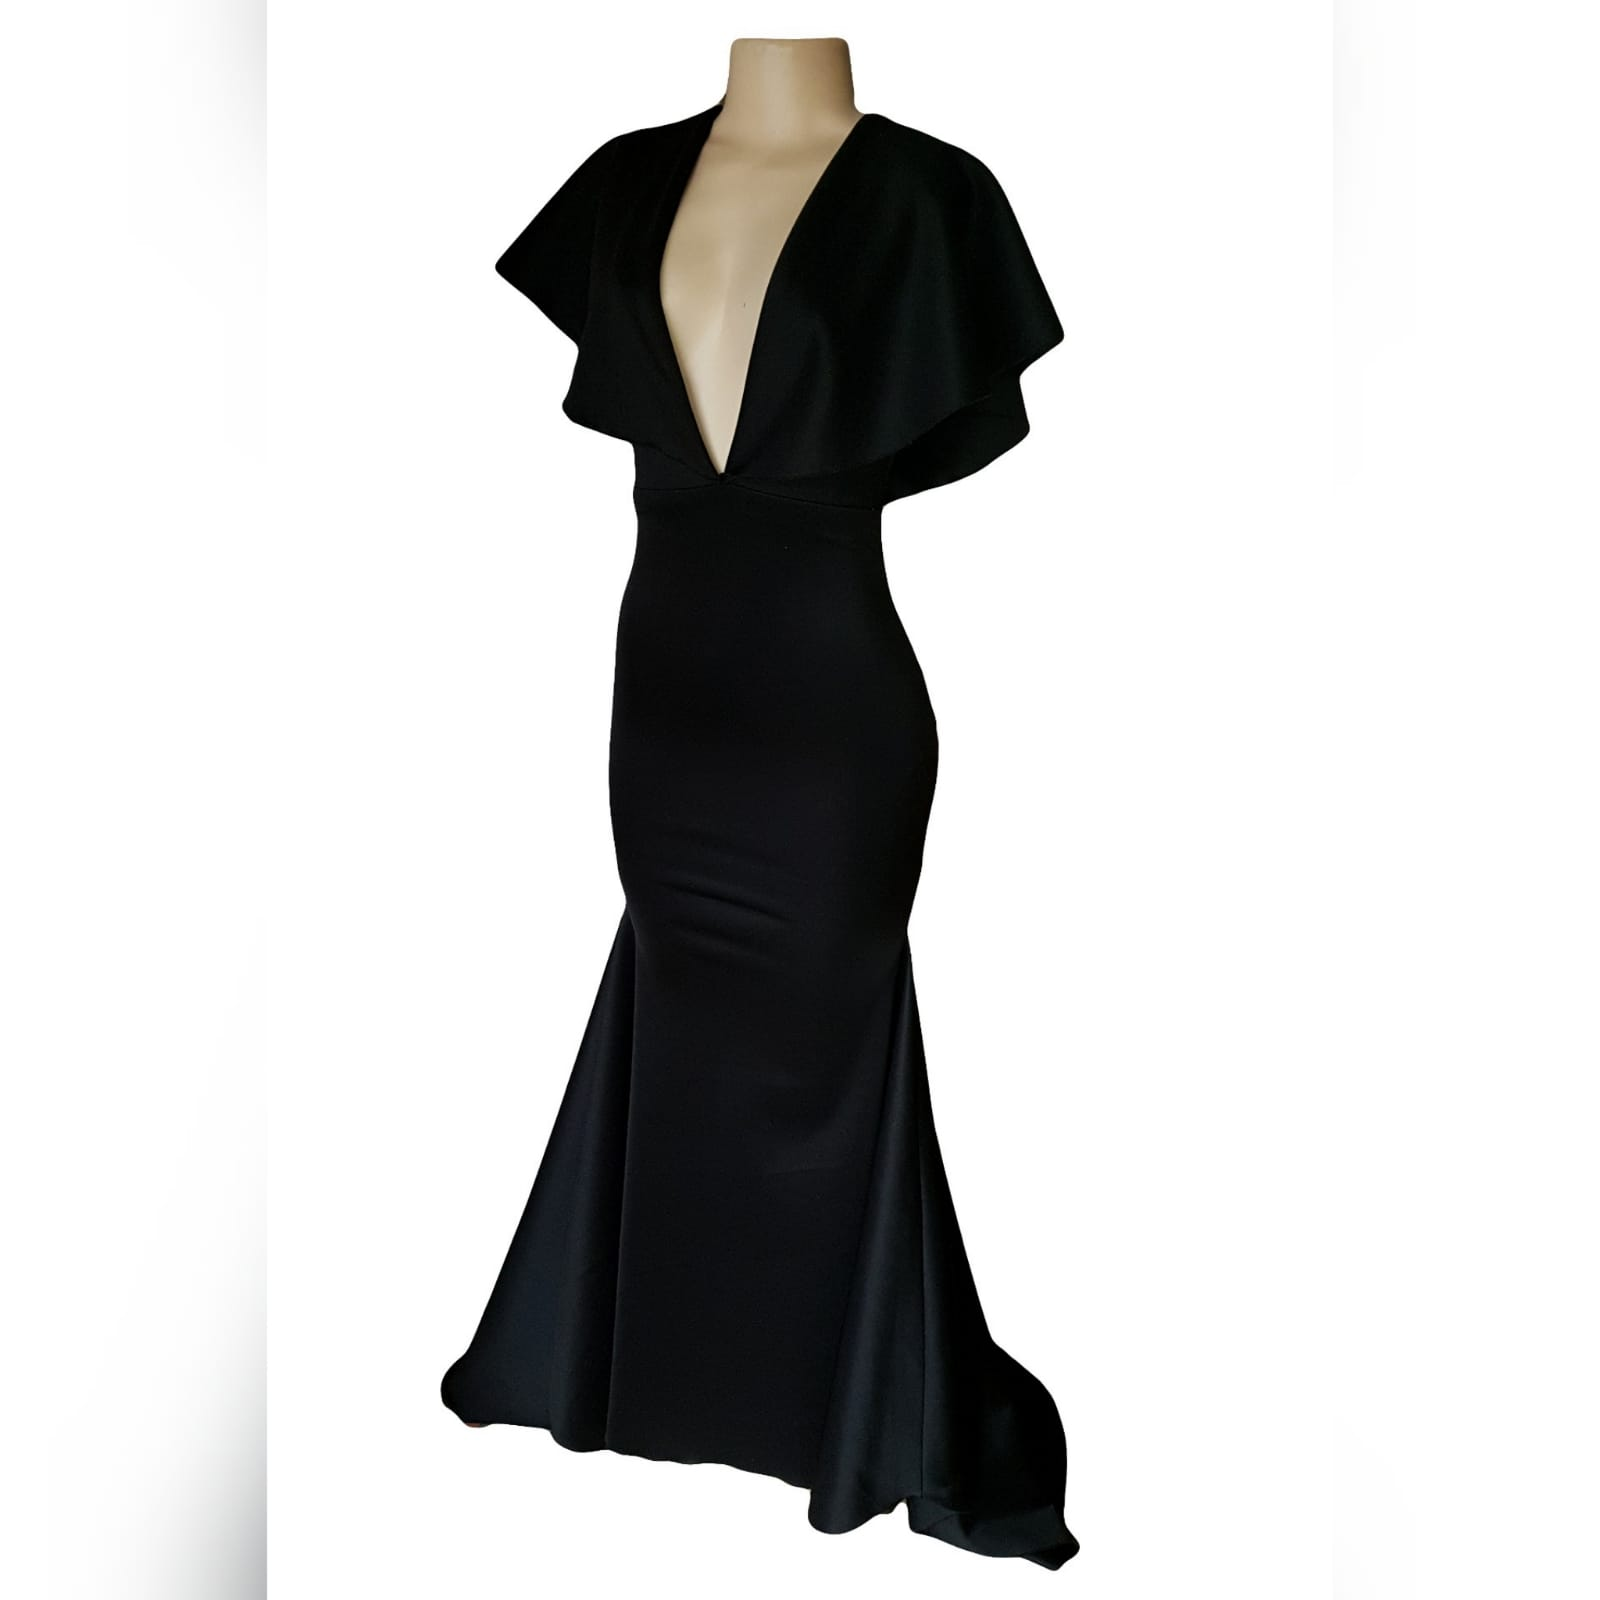 Black soft mermaid simple elegant evening dress 7 black soft mermaid simple elegant evening dress, made for prom night. With a plunging neckline, naked back, wide loose sleeves effect and a train